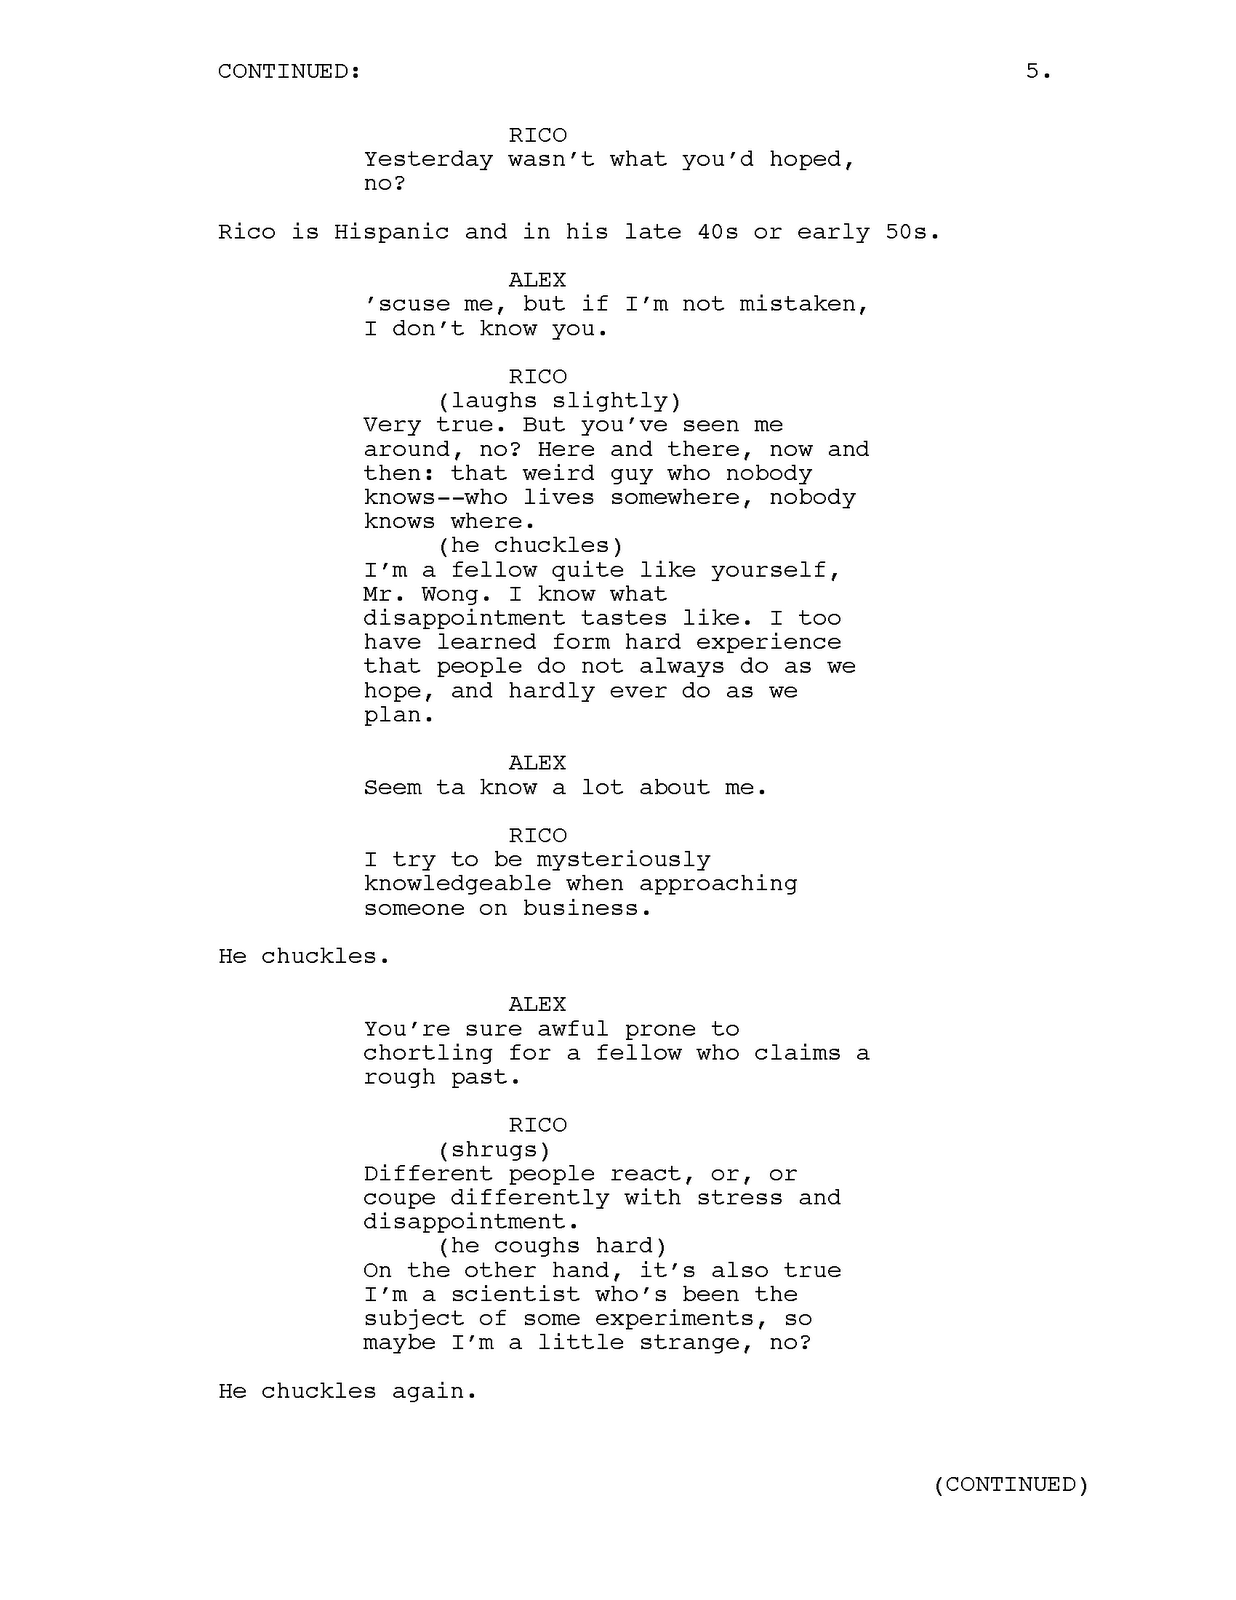 Tv Show Script Example Pictures to Pin on Pinterest ... Tv Show Script